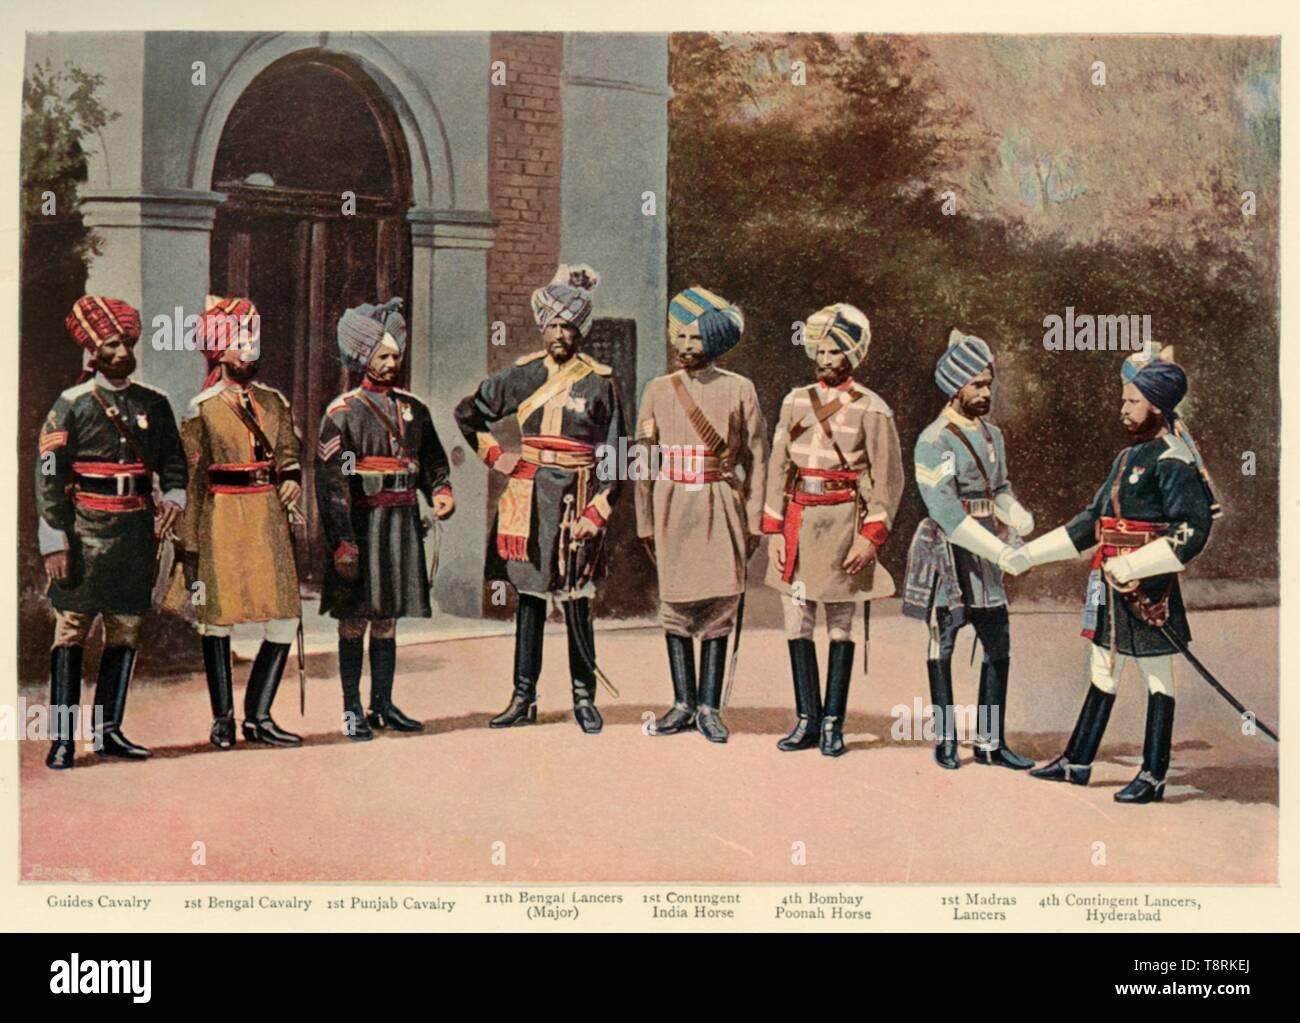 """'Types of Indian Cavalry', 1901. Indian soldiers during the period of the British Raj: 'Guides Cavalry; 1st Bengal Cavalry; 1st Punjab Cavalry; 11th Bengal Lancers (Major); 1st Contingent India Horse; 4th Bombay Poonah Horse; 1st Madras Lancers; 4th Contingent Lancers, Hyderabad'. From """"The Life and Deeds of Earl Roberts, Vol. III. - To The End of Lord Roberts's Indian Career"""", by J. Maclaren Cobban. [T. C. & E. C. Jack, Edinburgh, 1901] - Stock Image"""